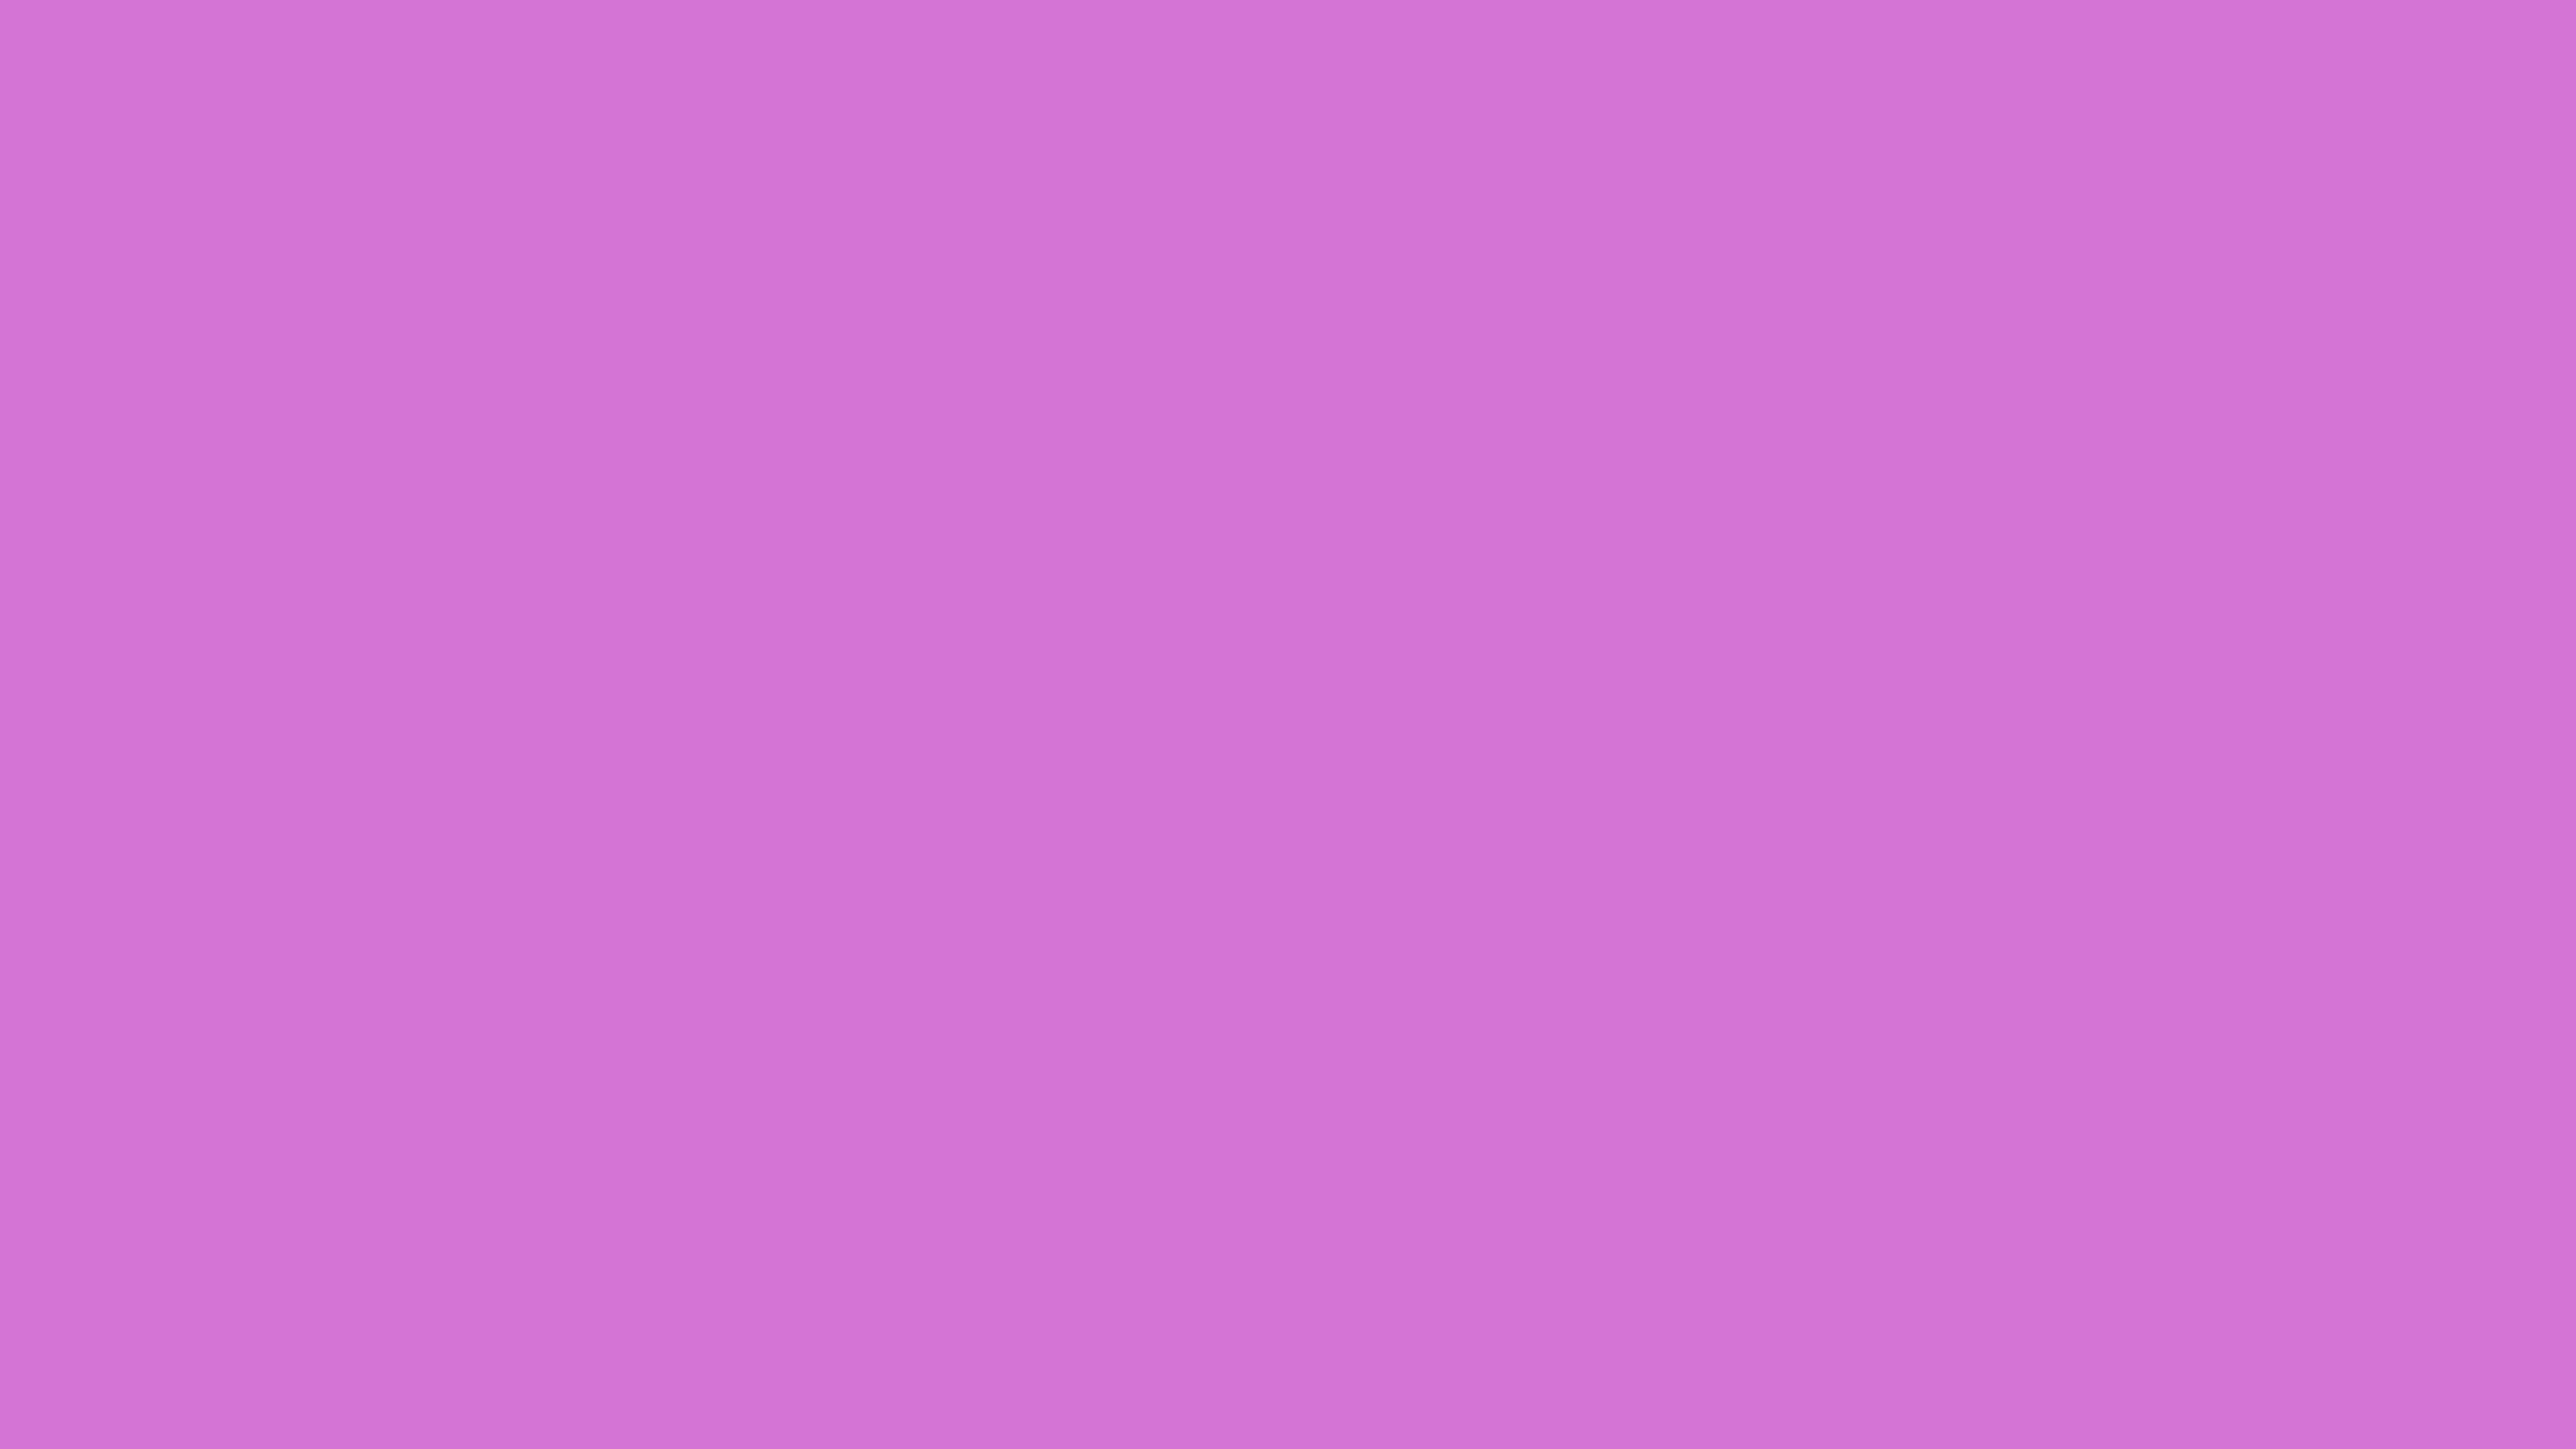 3840x2160 French Mauve Solid Color Background